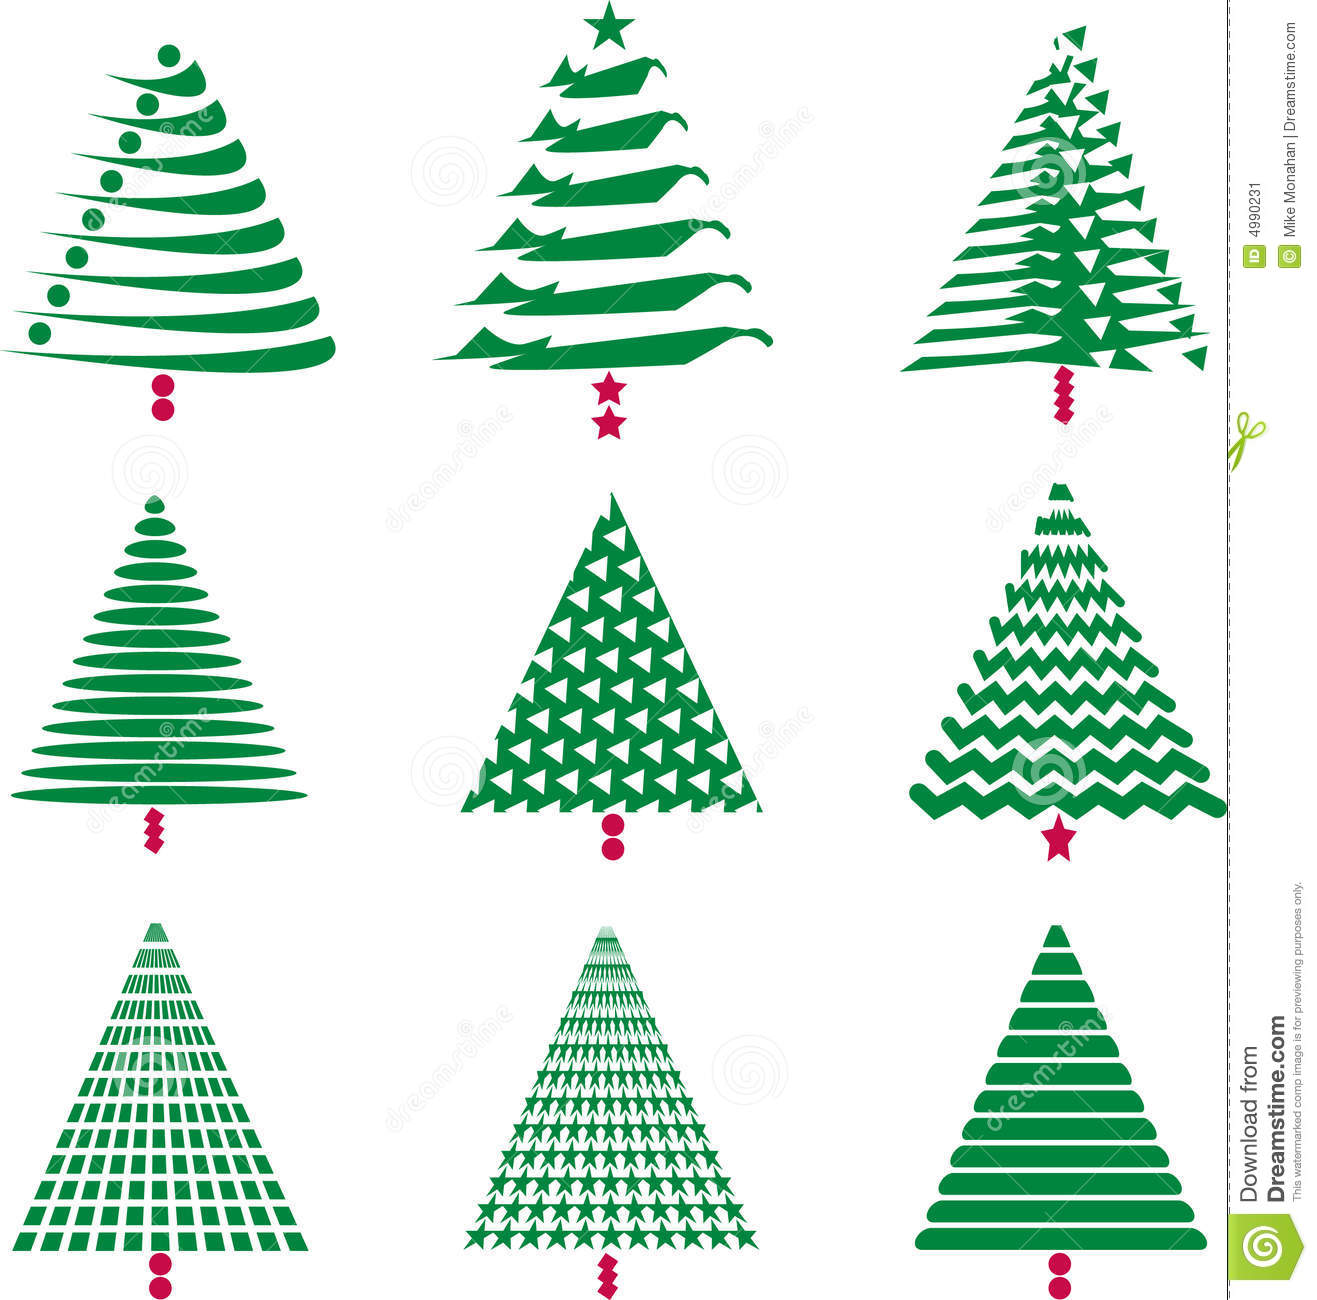 various christmas tree designs - Christmas Tree Designs